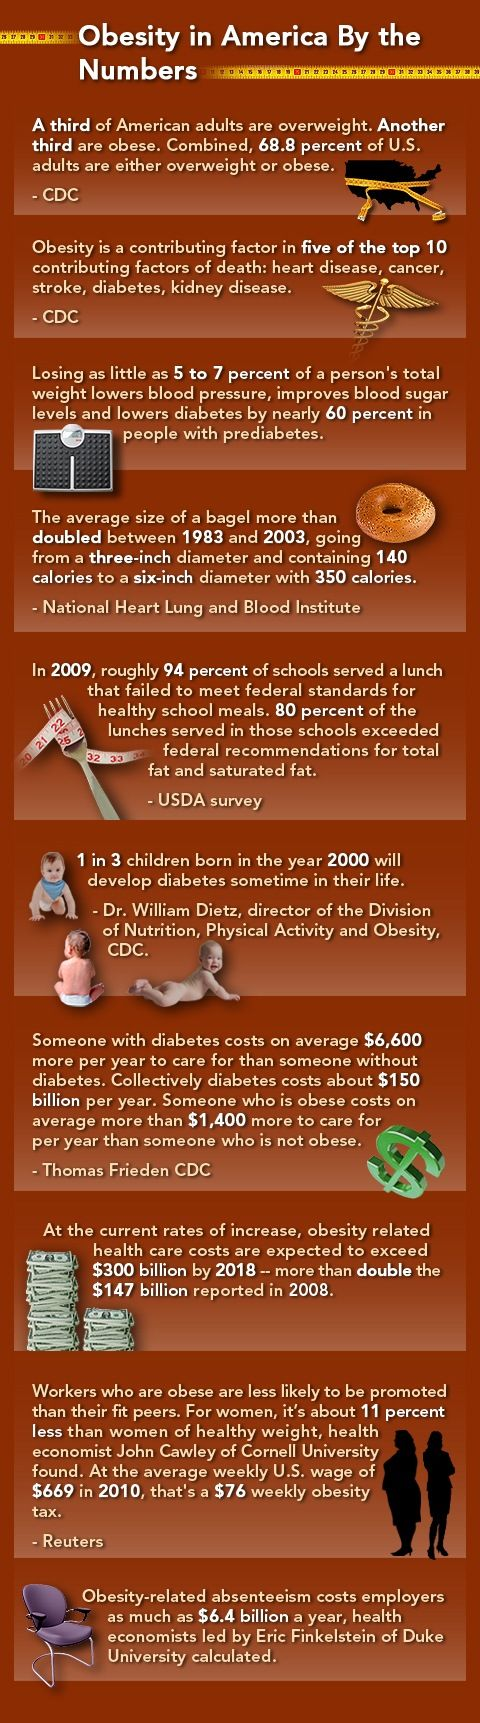 best obesity classes ideas cooking  obesity in america by the numbers